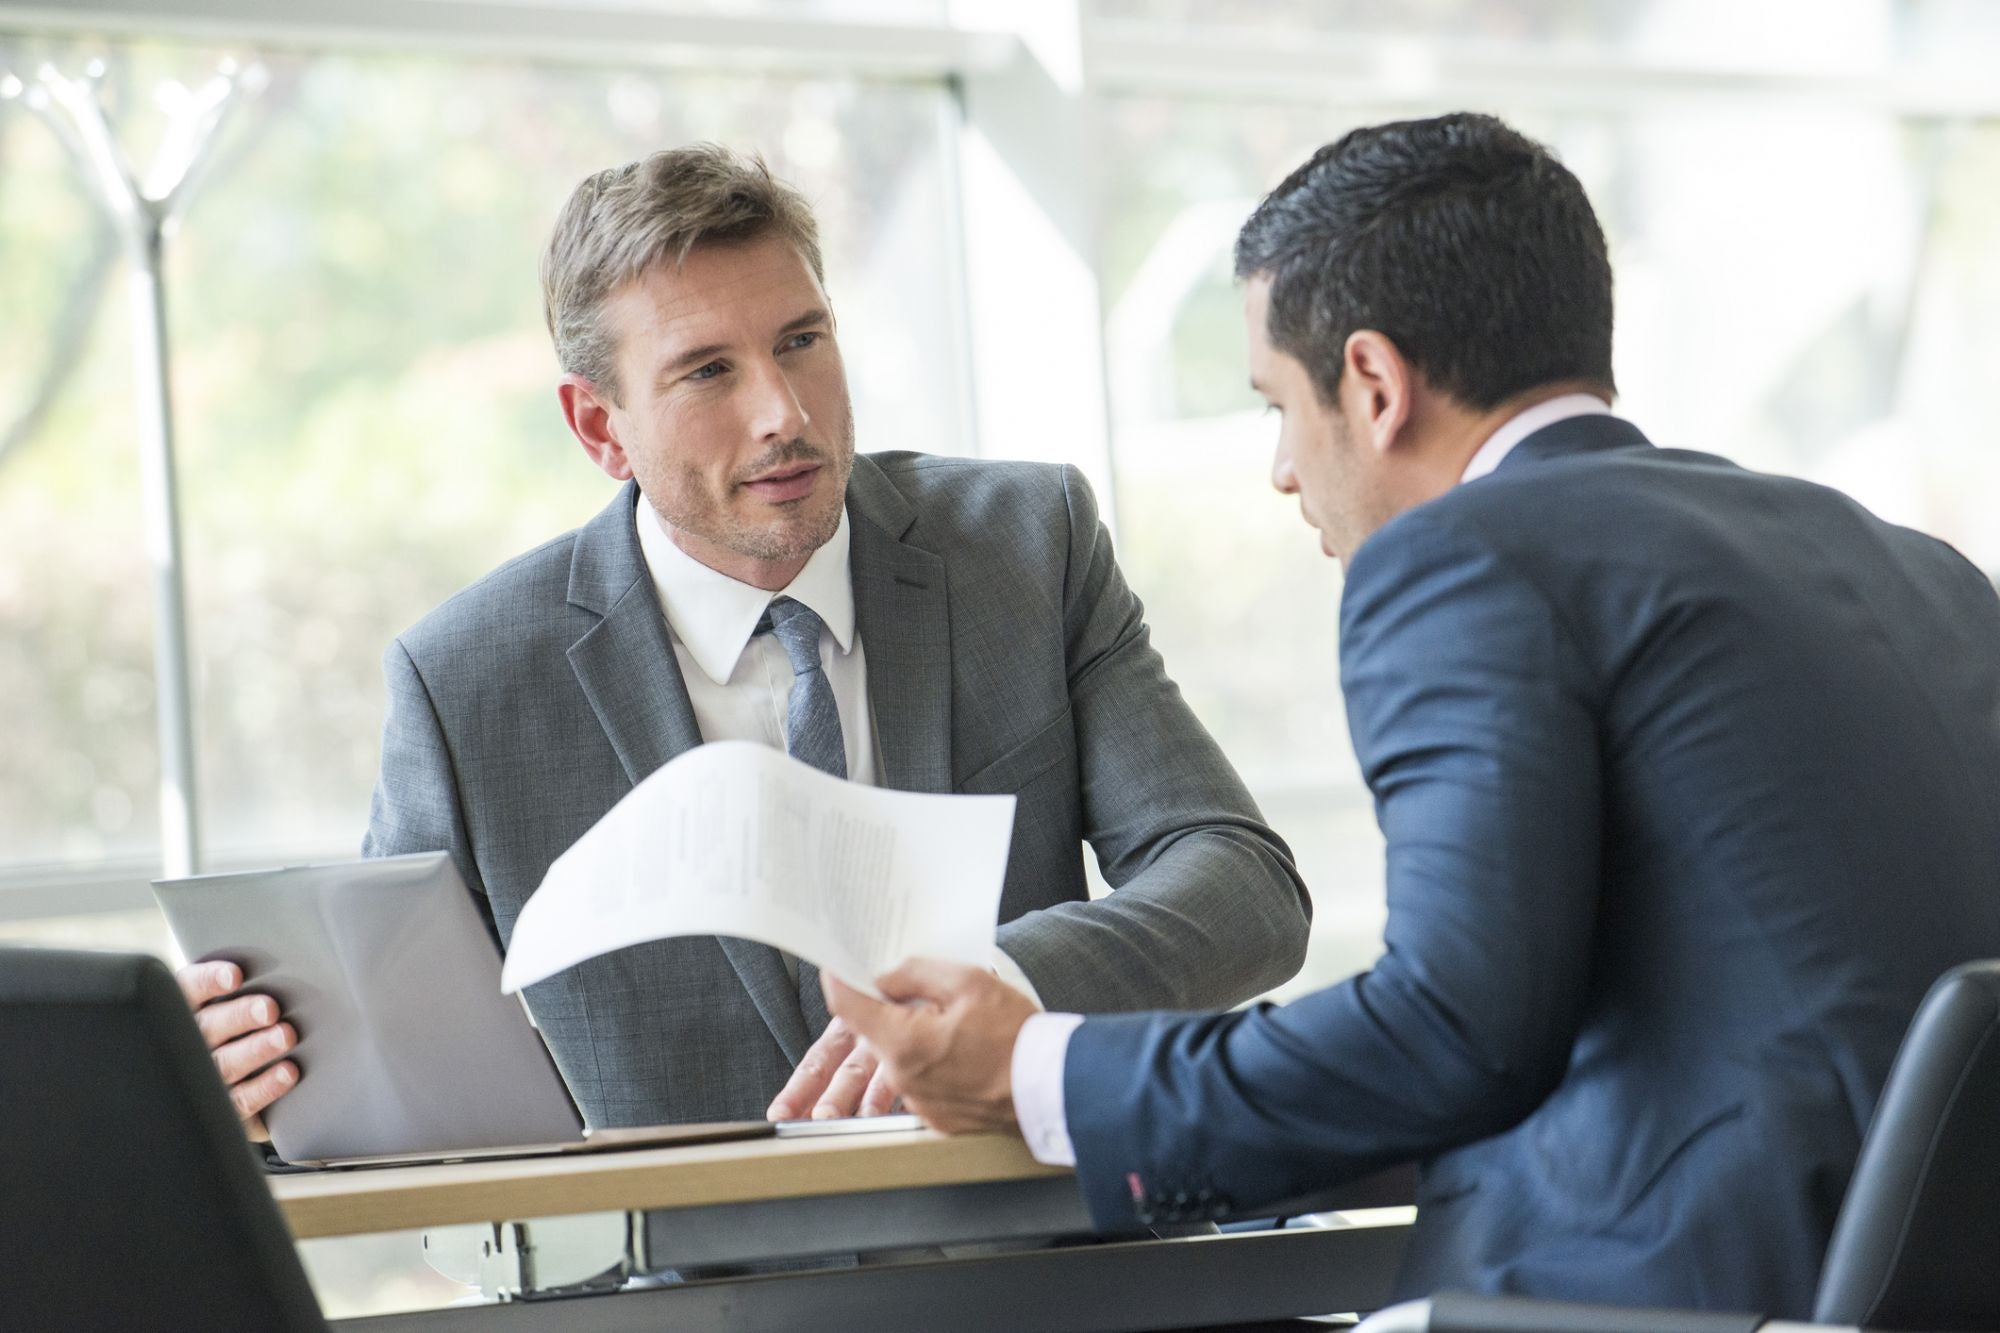 Find A Lawyer With These Tips